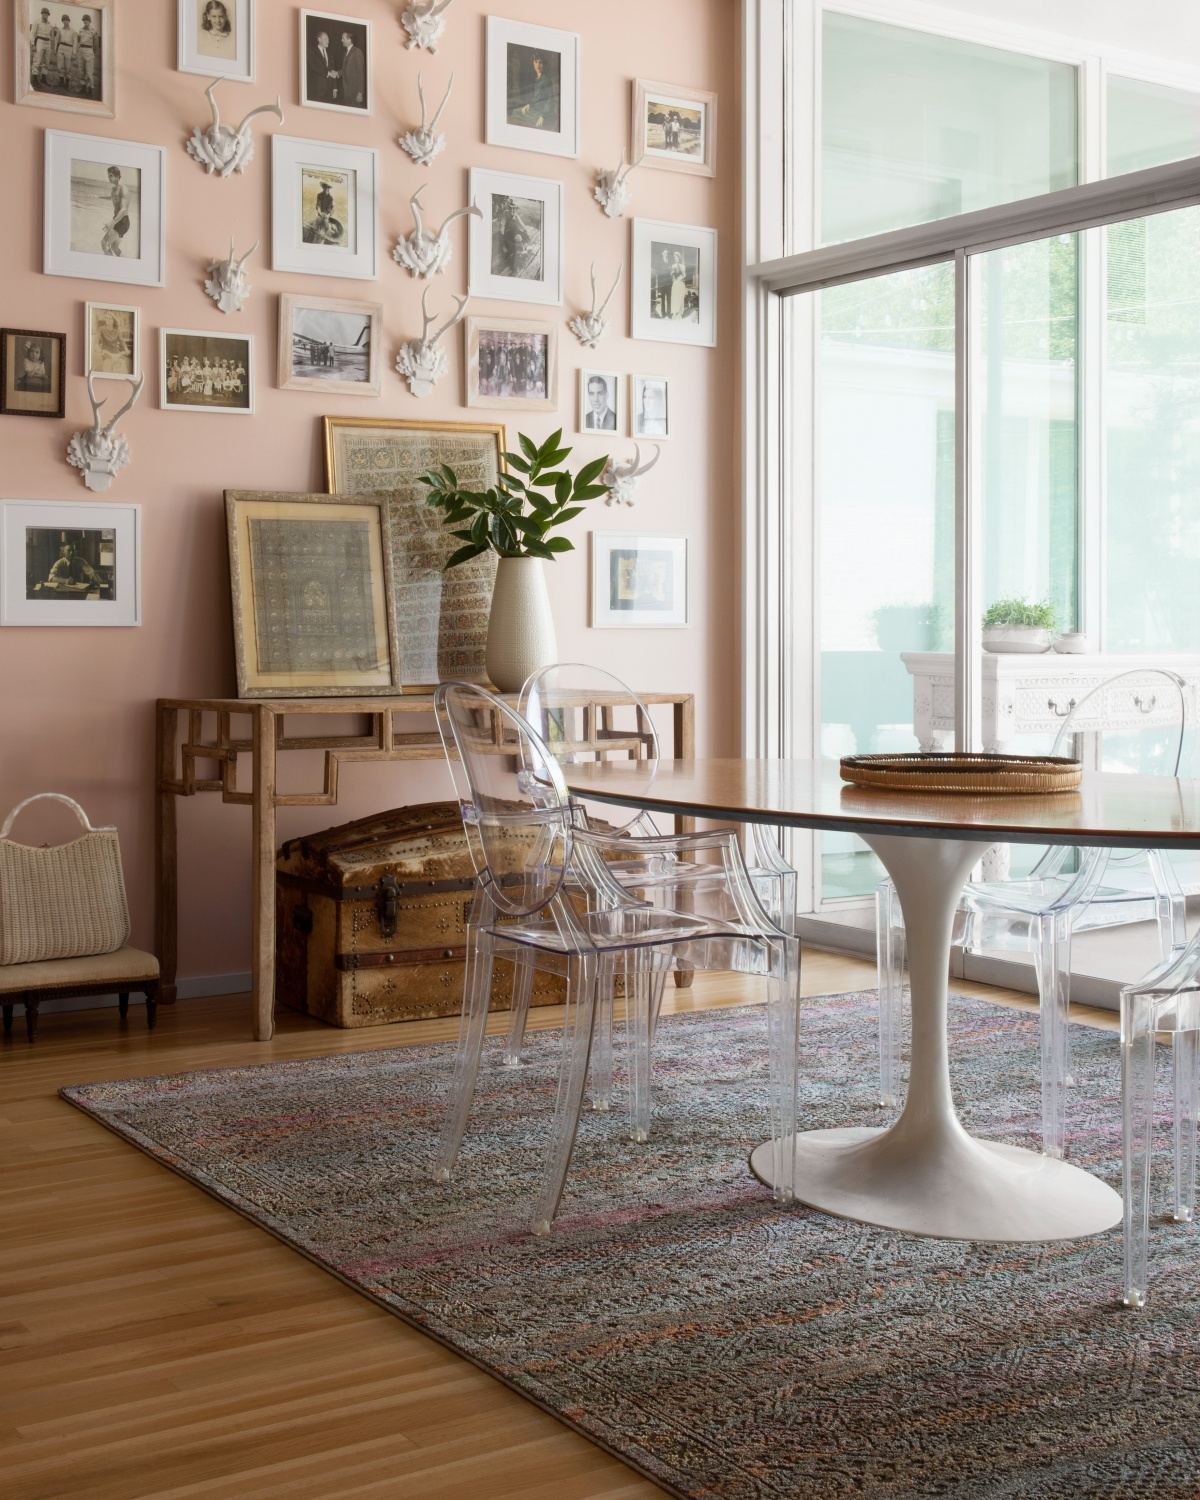 pink dining room with accent wall art pieces